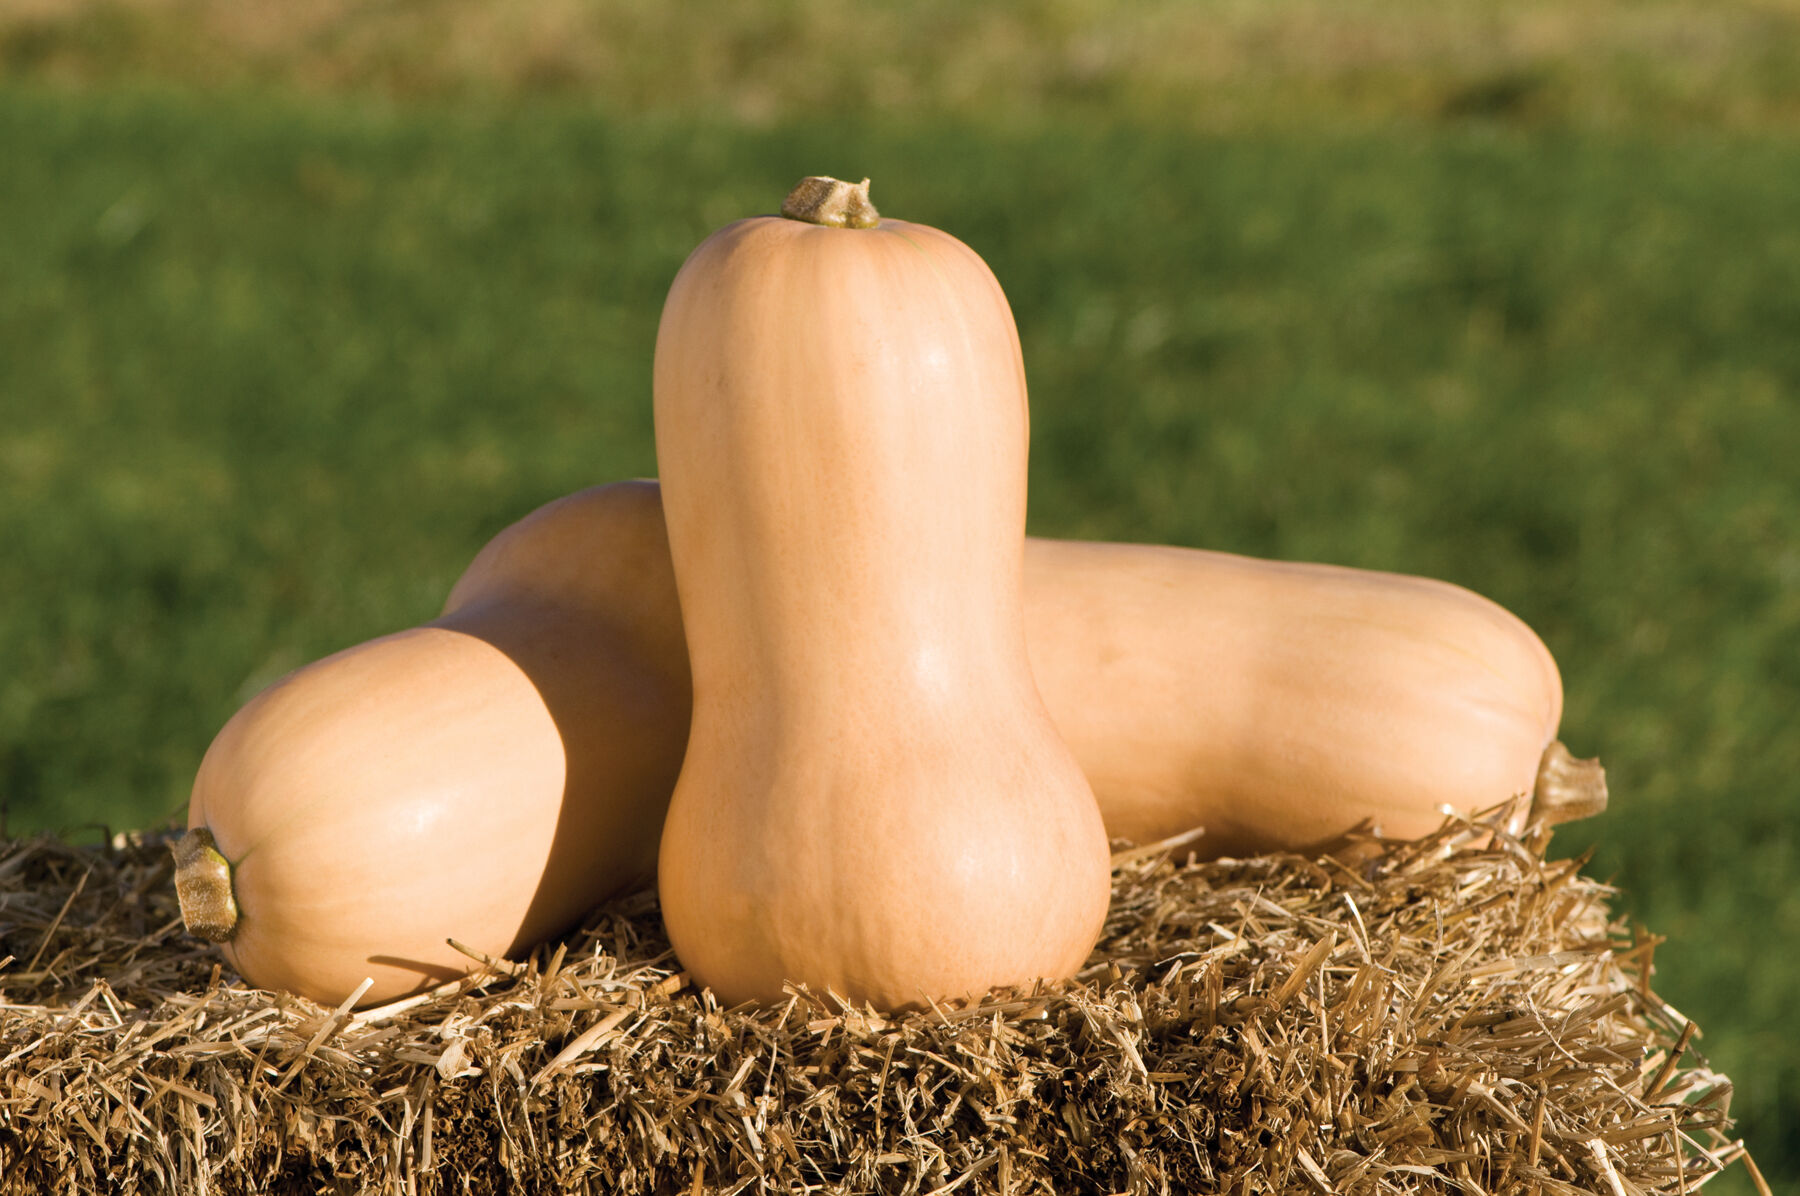 Butternut squash days to maturity